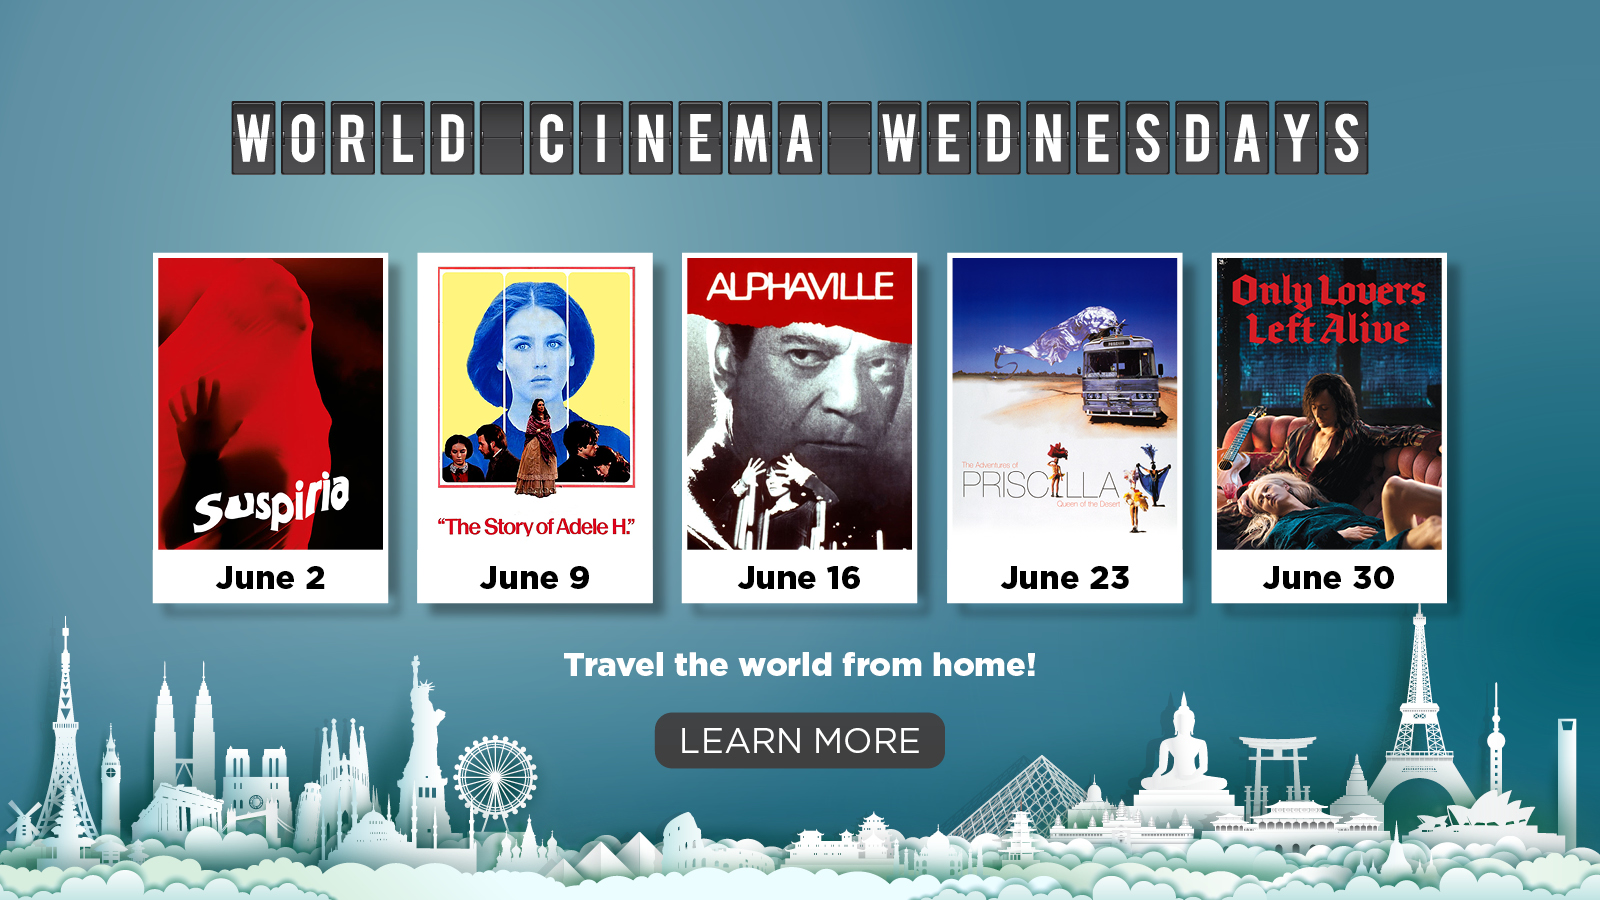 World Cinema Wednesday – Travel the World from Home. LEARN MORE